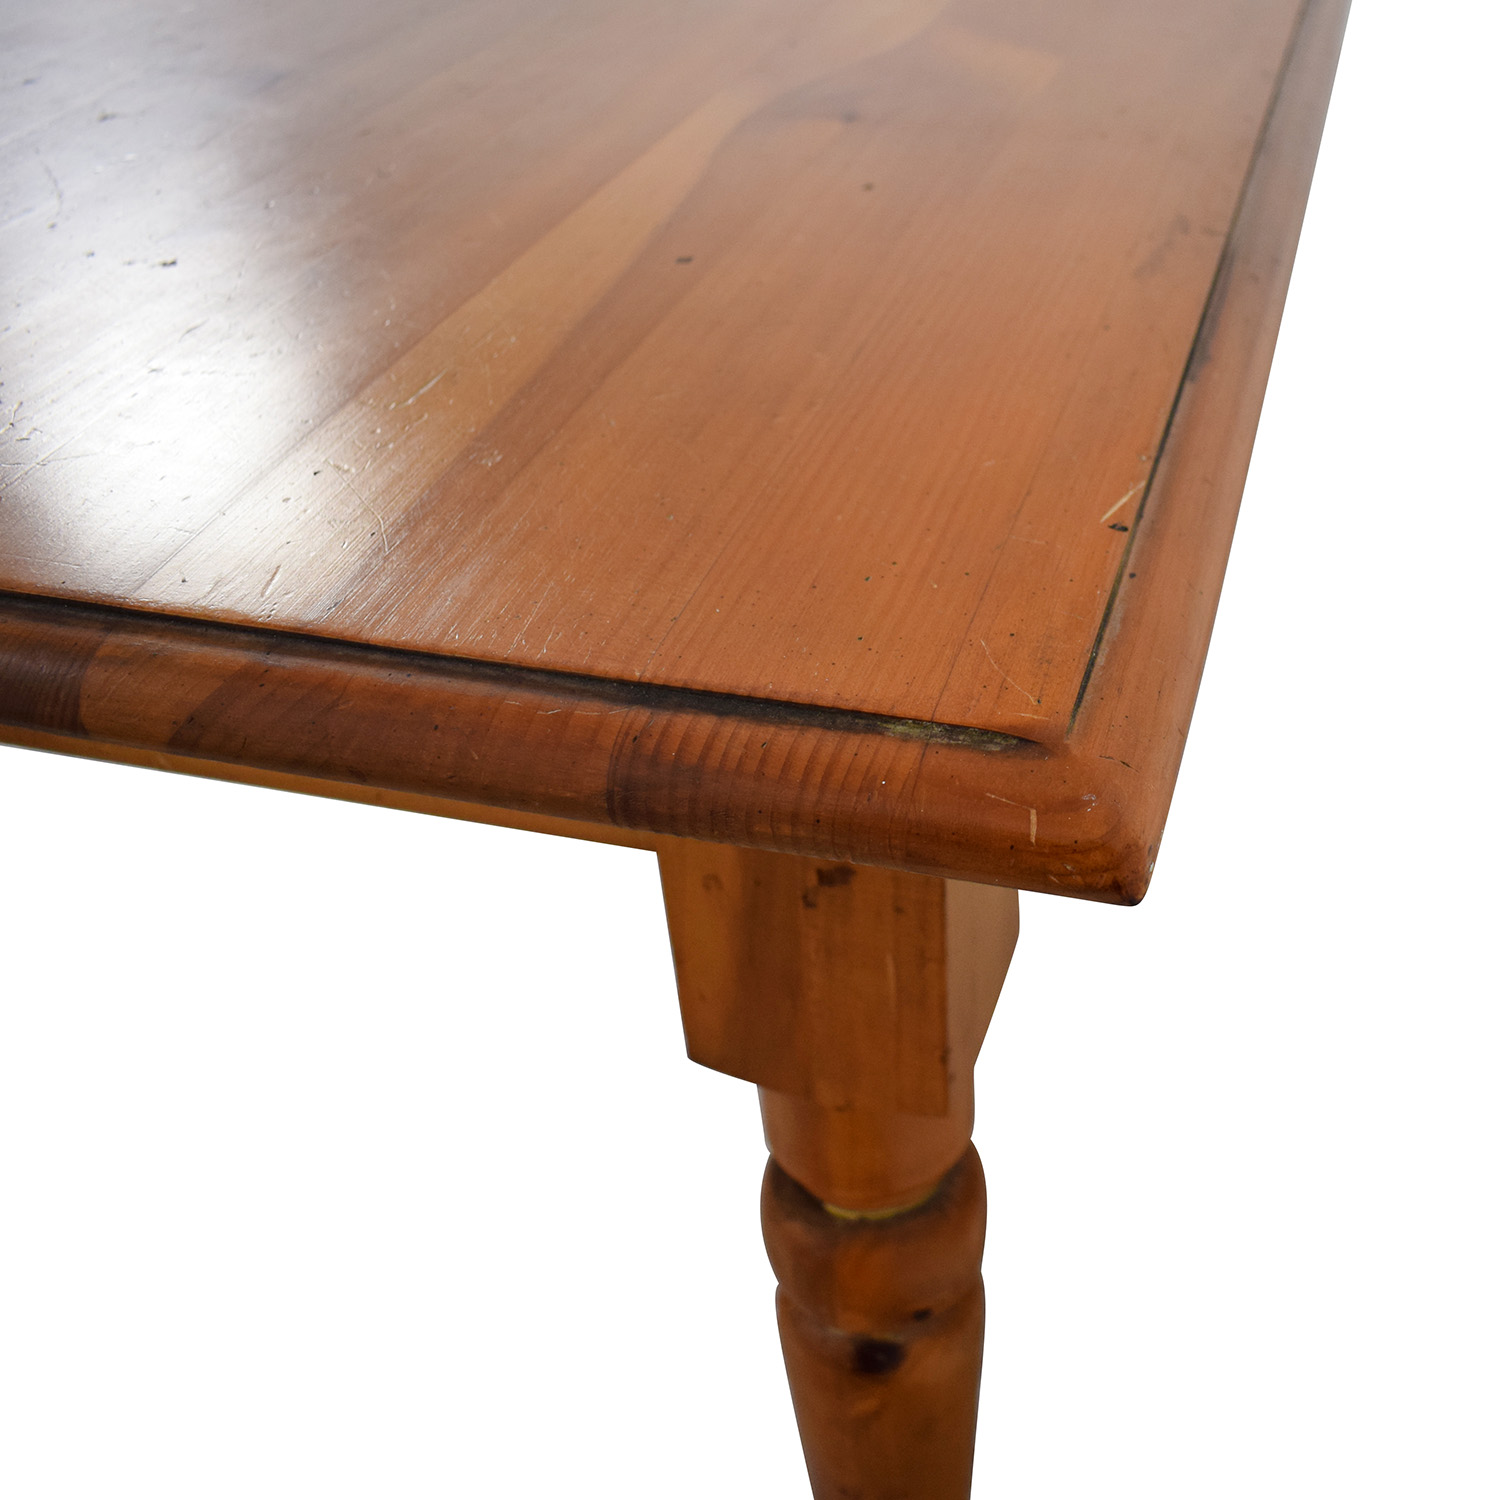 Southern Furniture Reproductions Southern Furniture Reproductions Dinner Table second hand